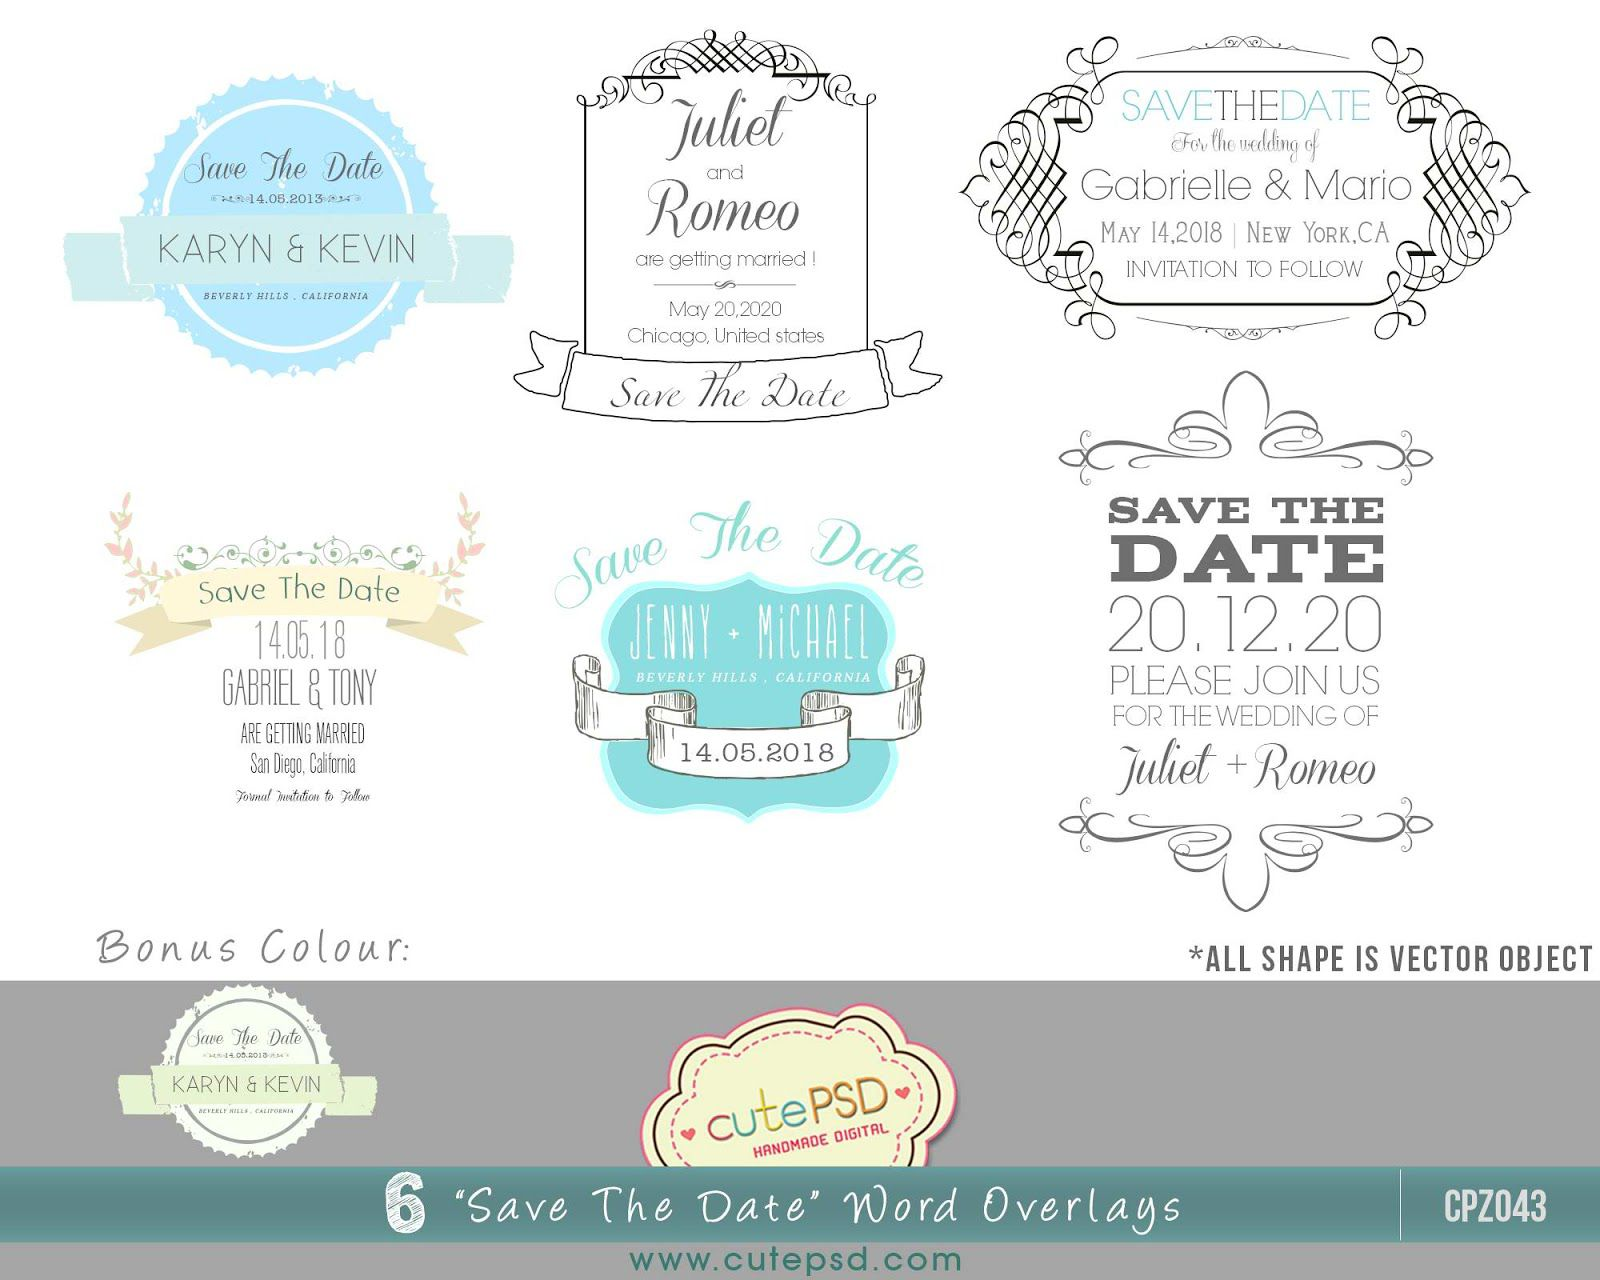 003 Beautiful Save The Date Word Template Concept  Free Birthday For Microsoft Postcard FlyerFull